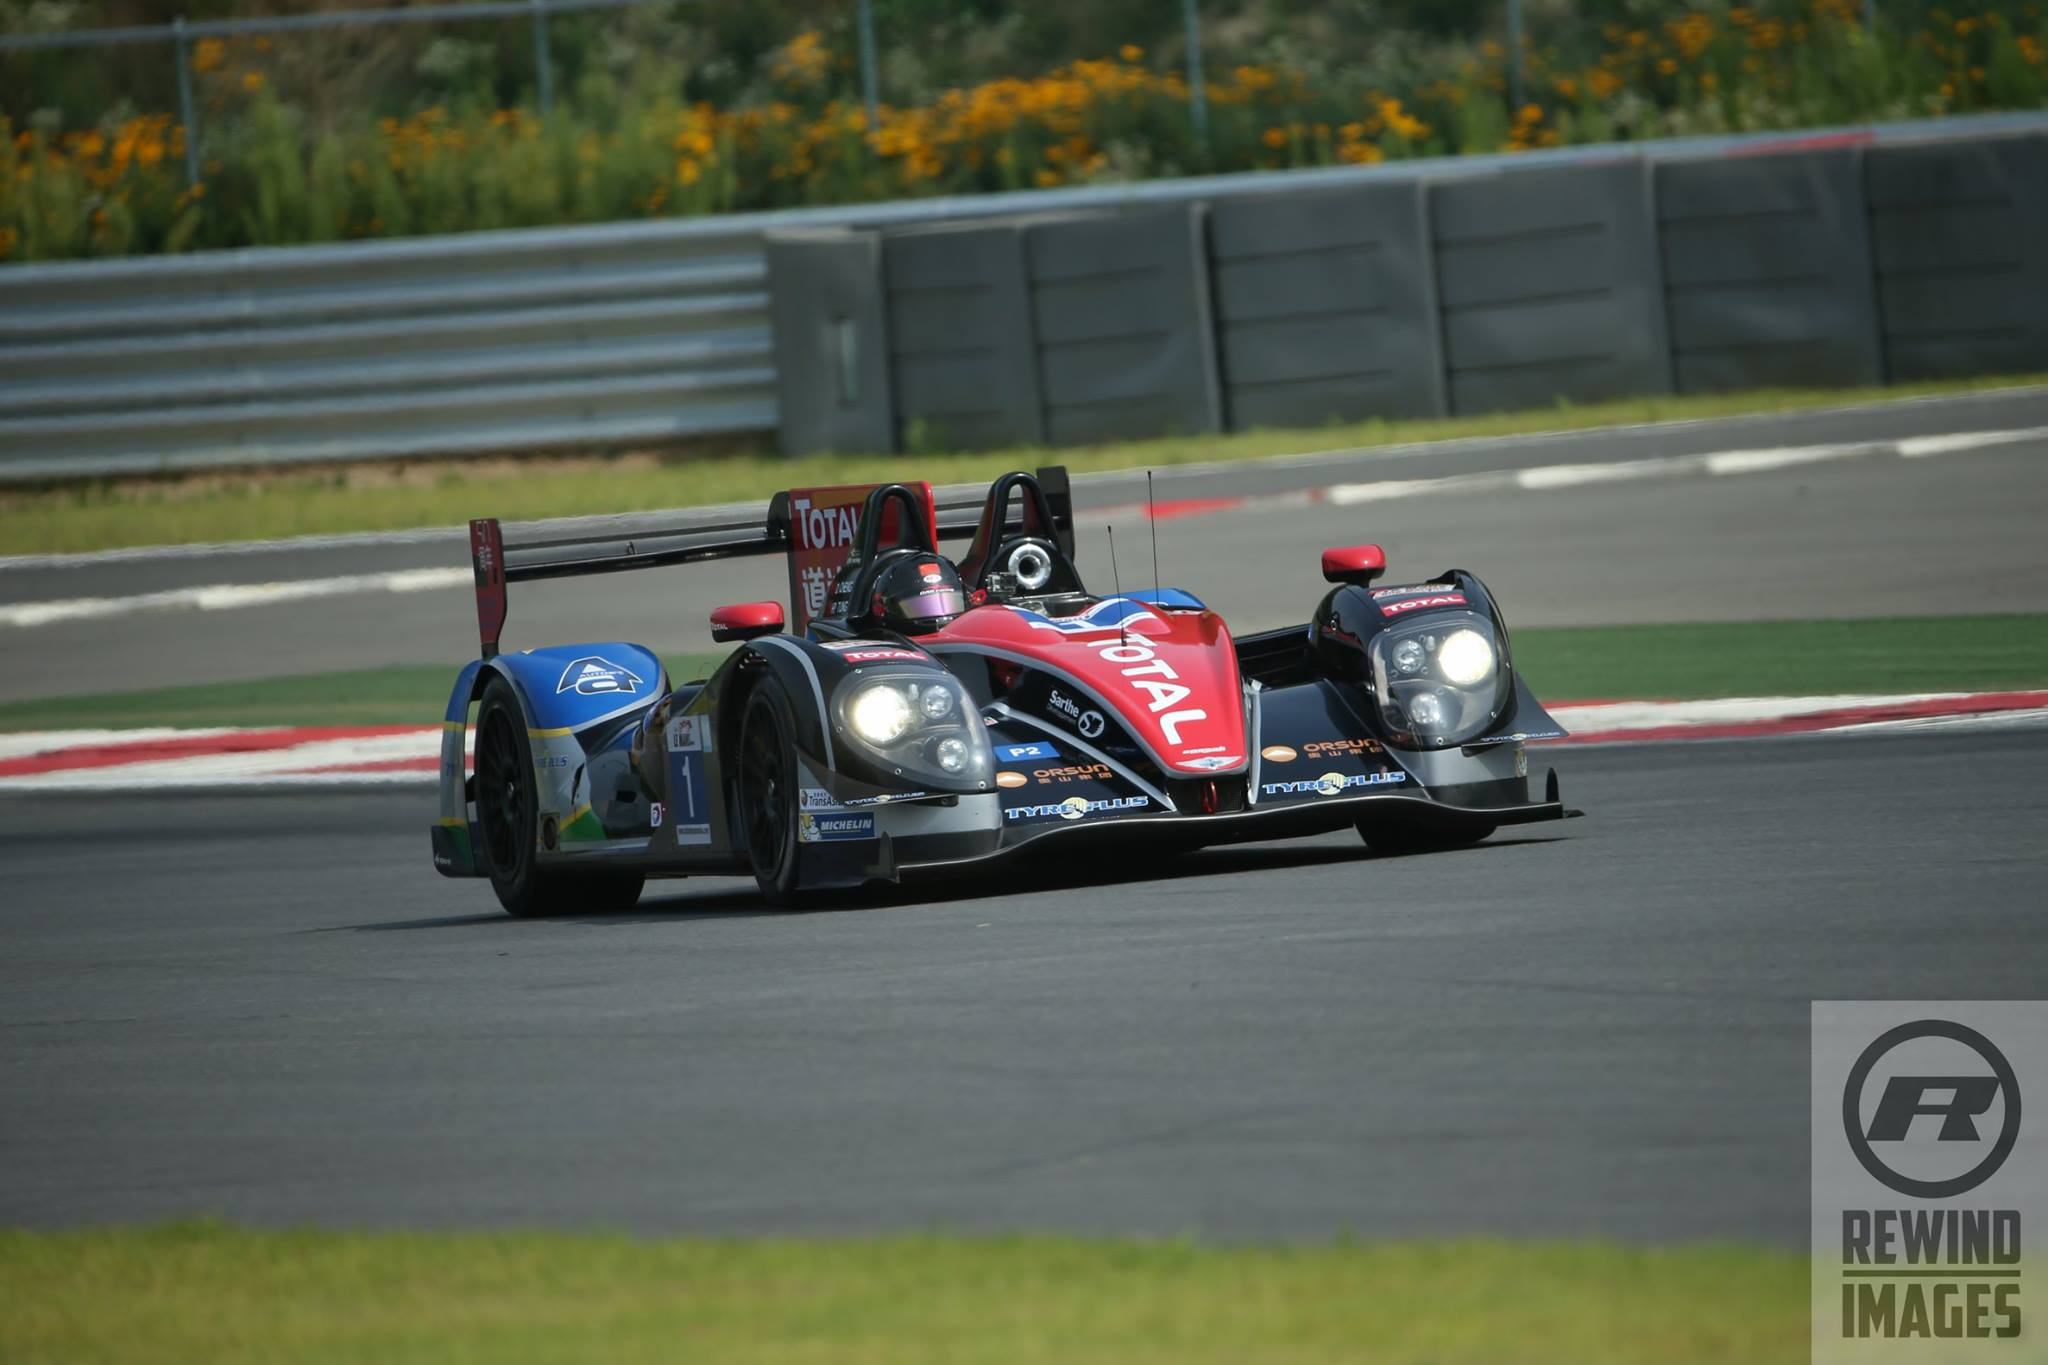 Asia Le Mans: Oak Racing convert their pole to victory at 3 Hours of Inje